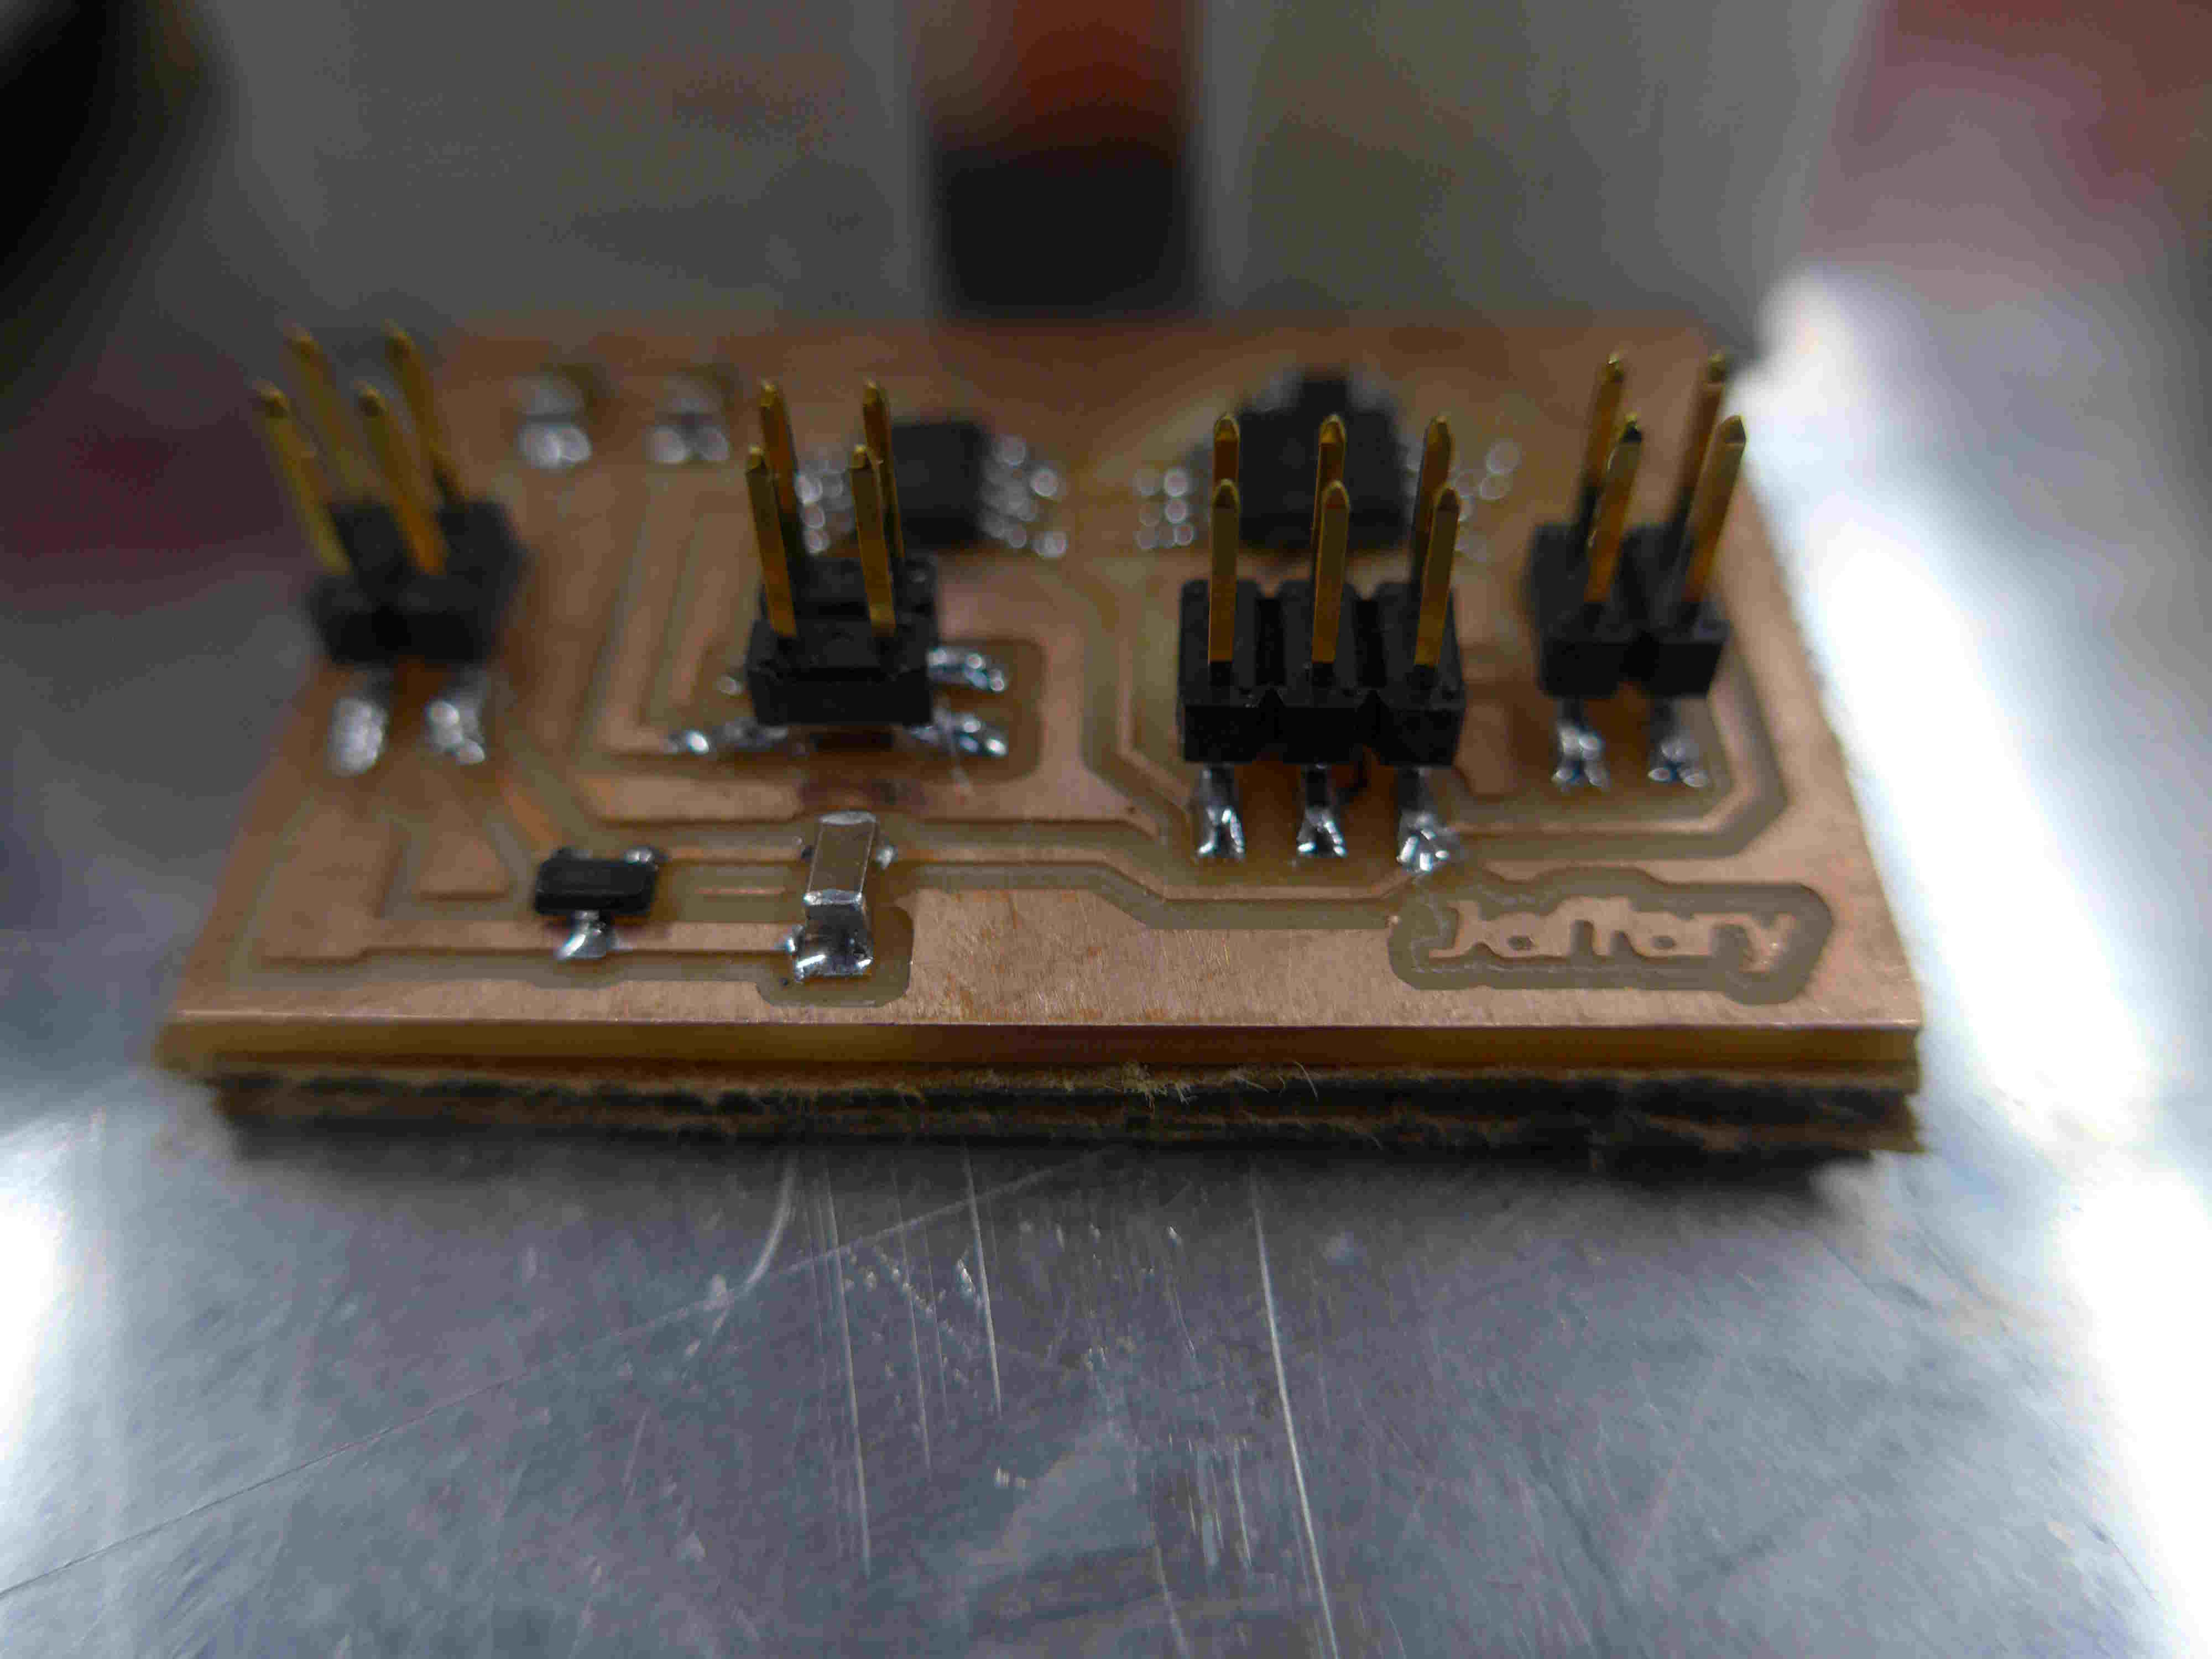 Jeffery Makes Almost Anything Circuit Board Under The Waterjet Ready To Be Sliced Pieces And Here Is Colletcion Of Boards All Attached